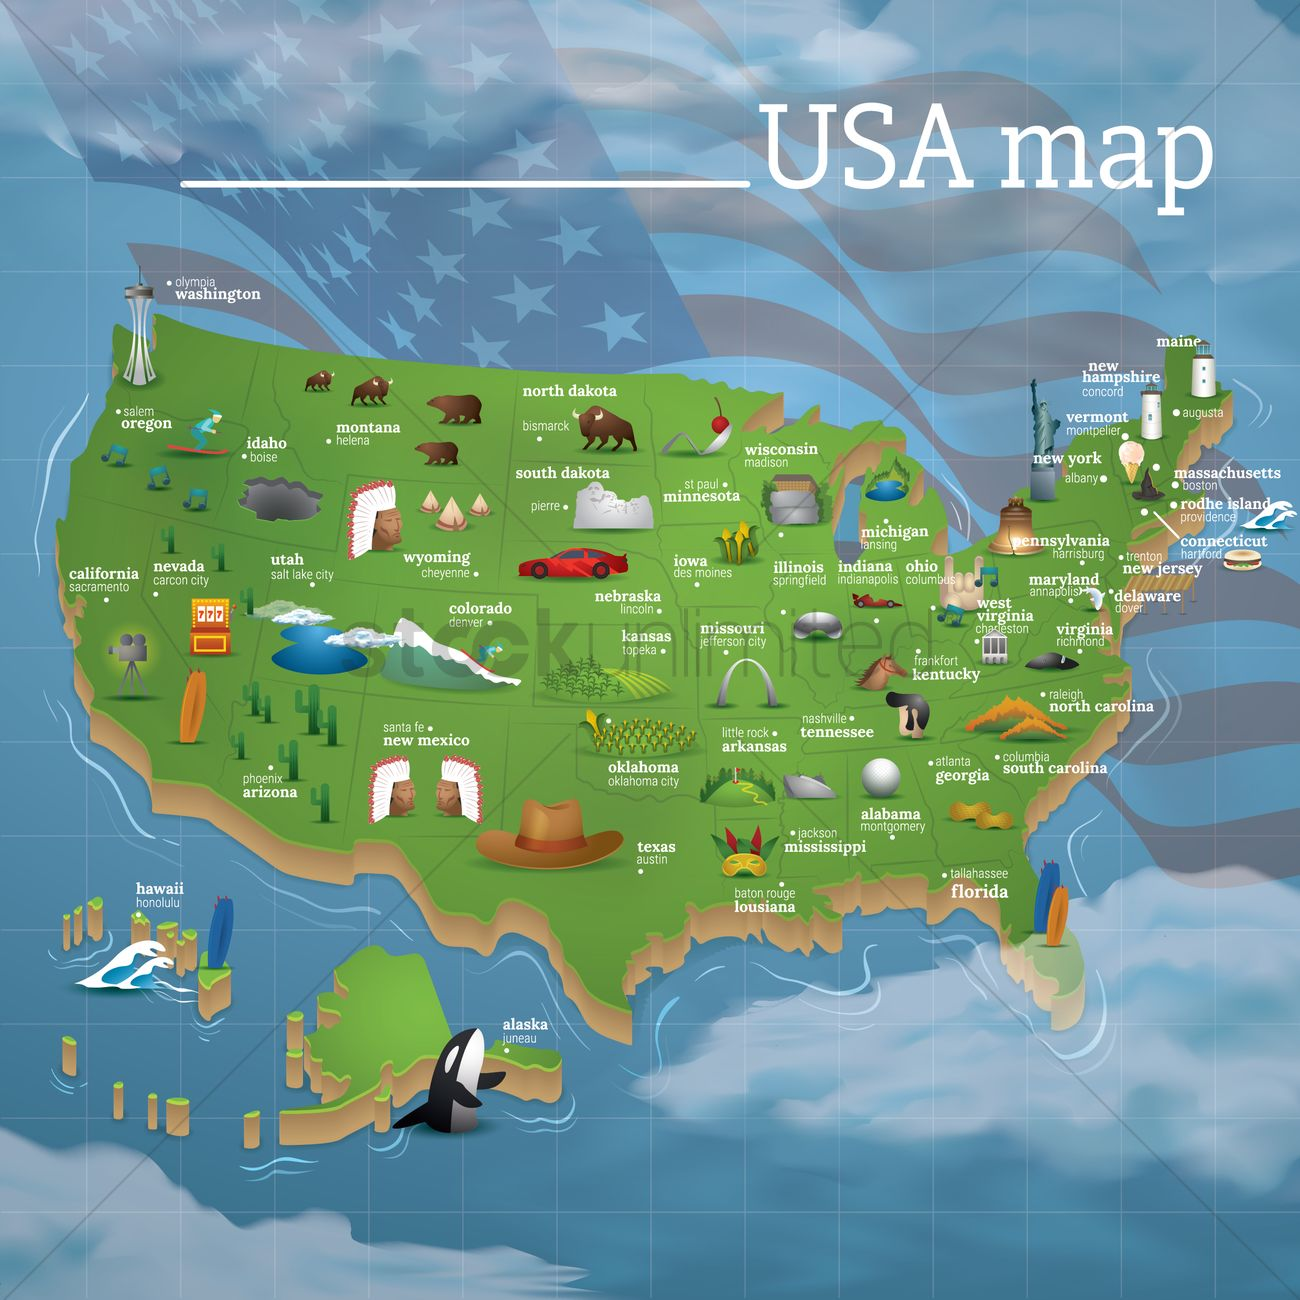 Usa map famous symbols Vector Image 1534479 StockUnlimited